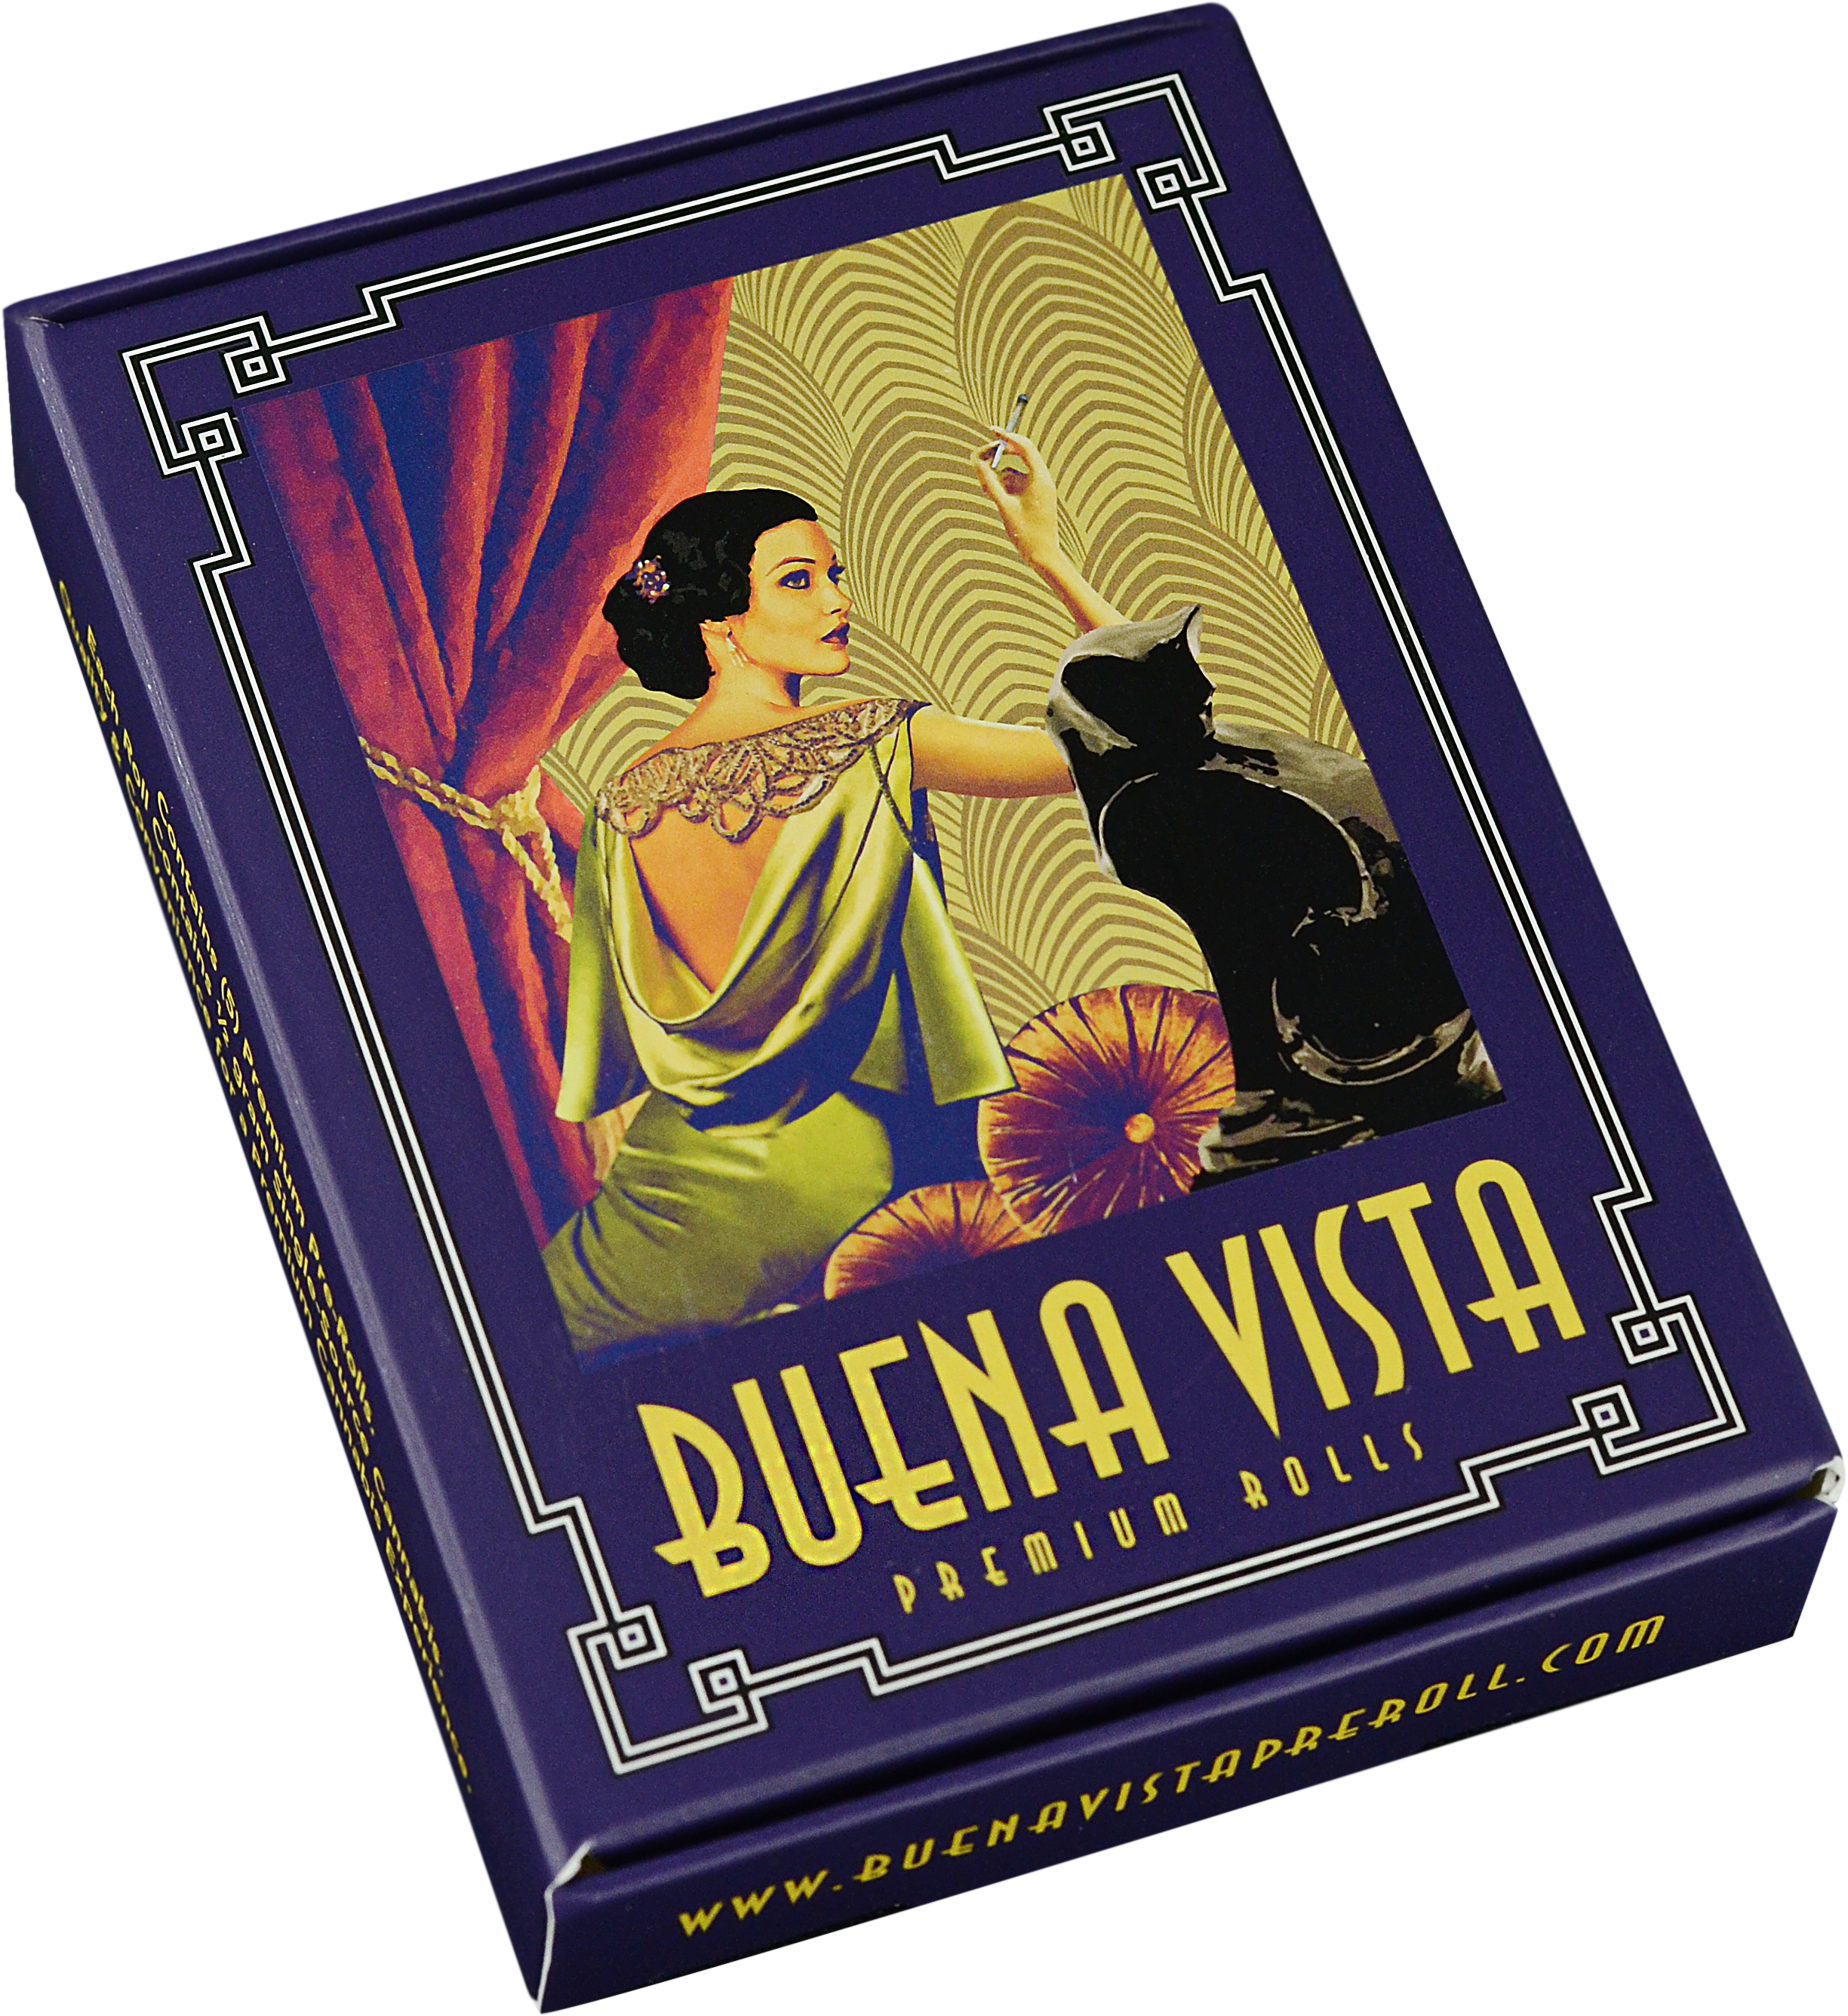 MCC-LABEL-buena-vista-box.png